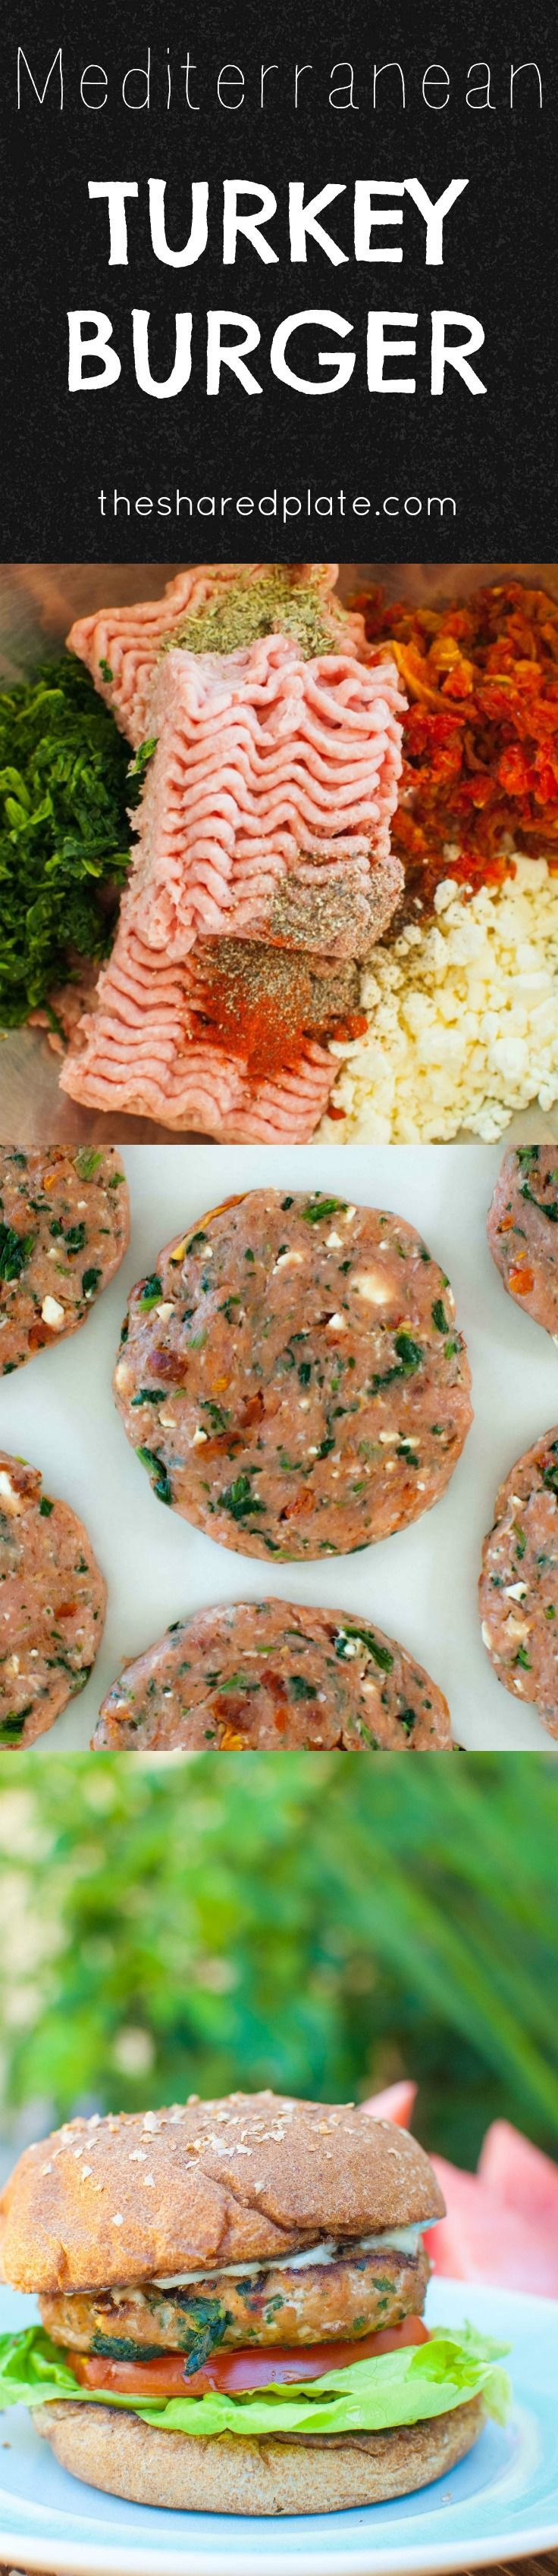 ... Turkey Burgers are feta crumbles, morsels of sun-dried tomato, and